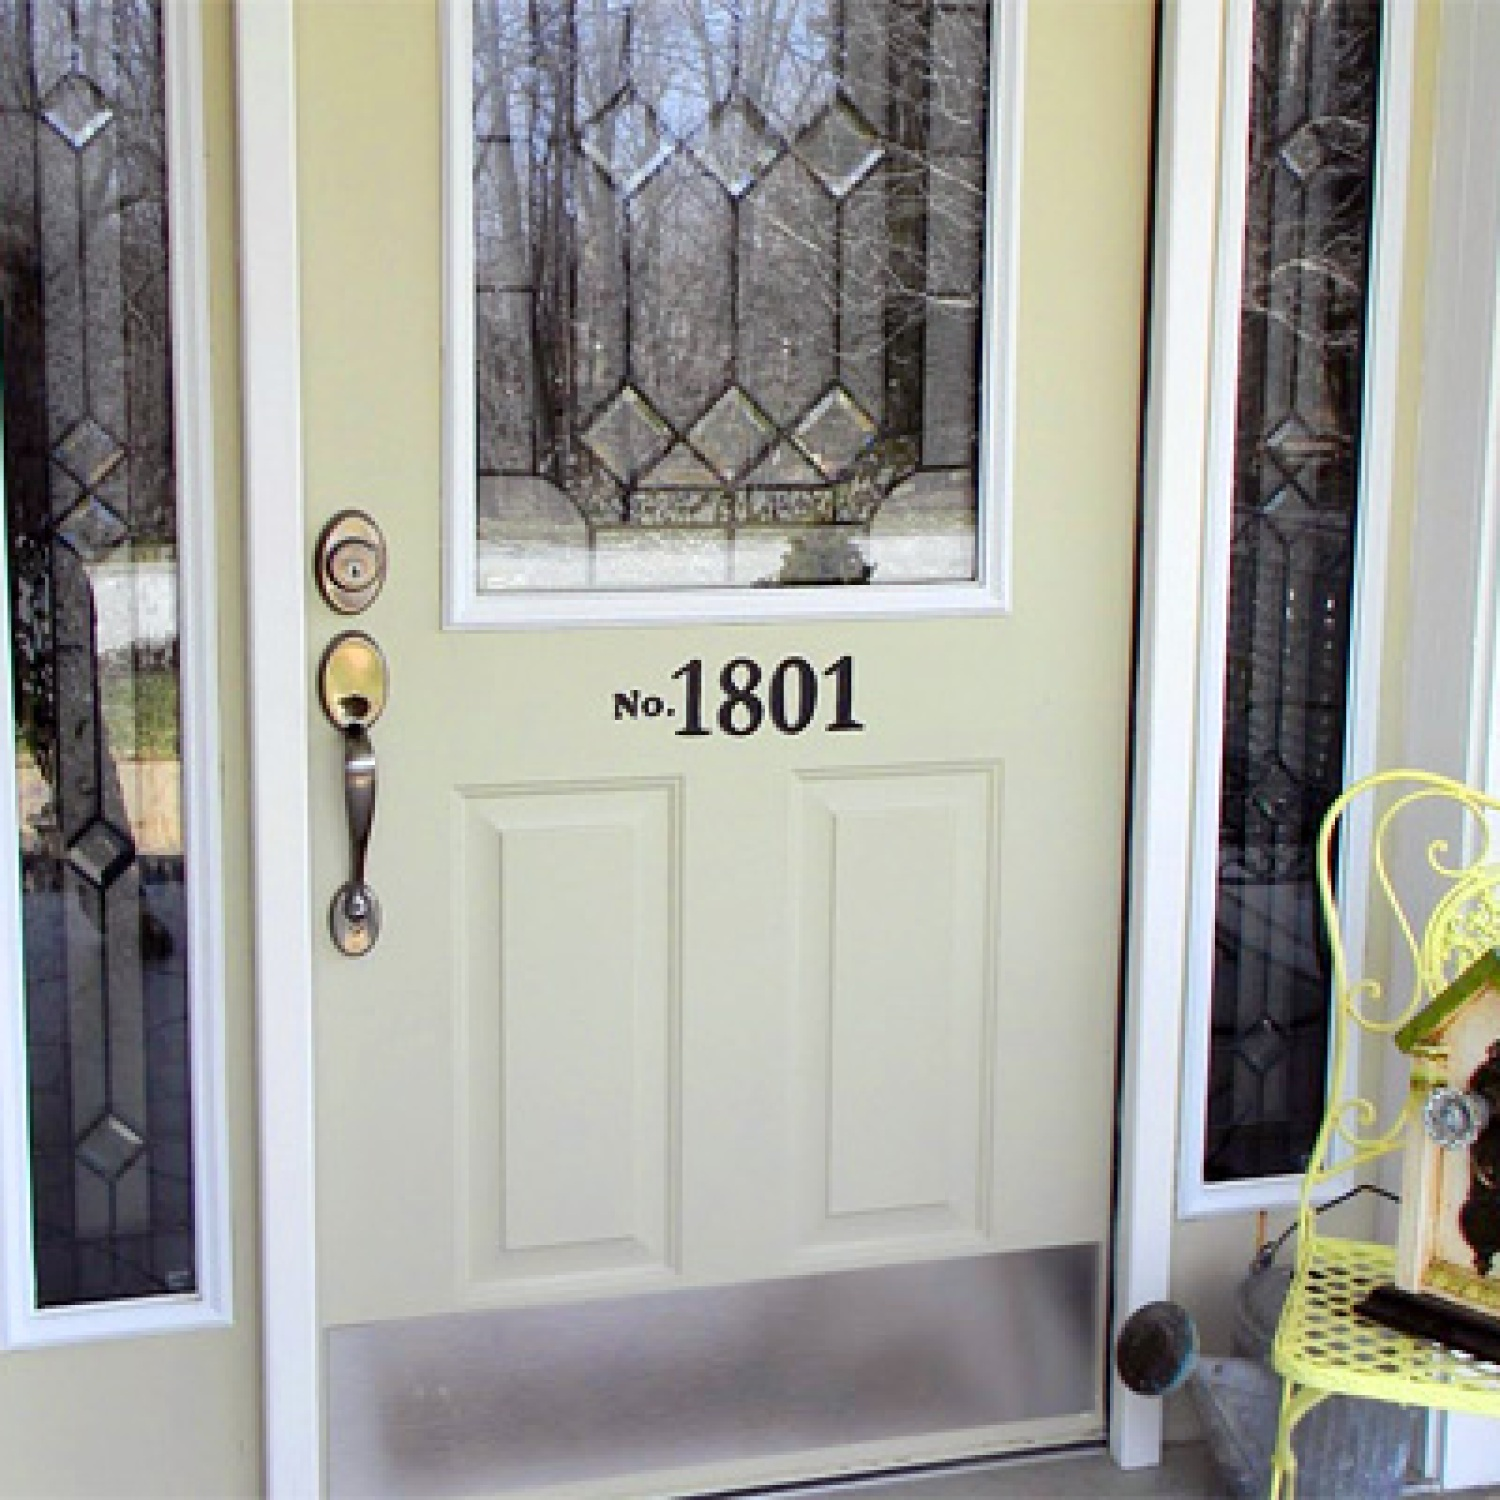 New Steel Entry Door | Value of Home Improvements